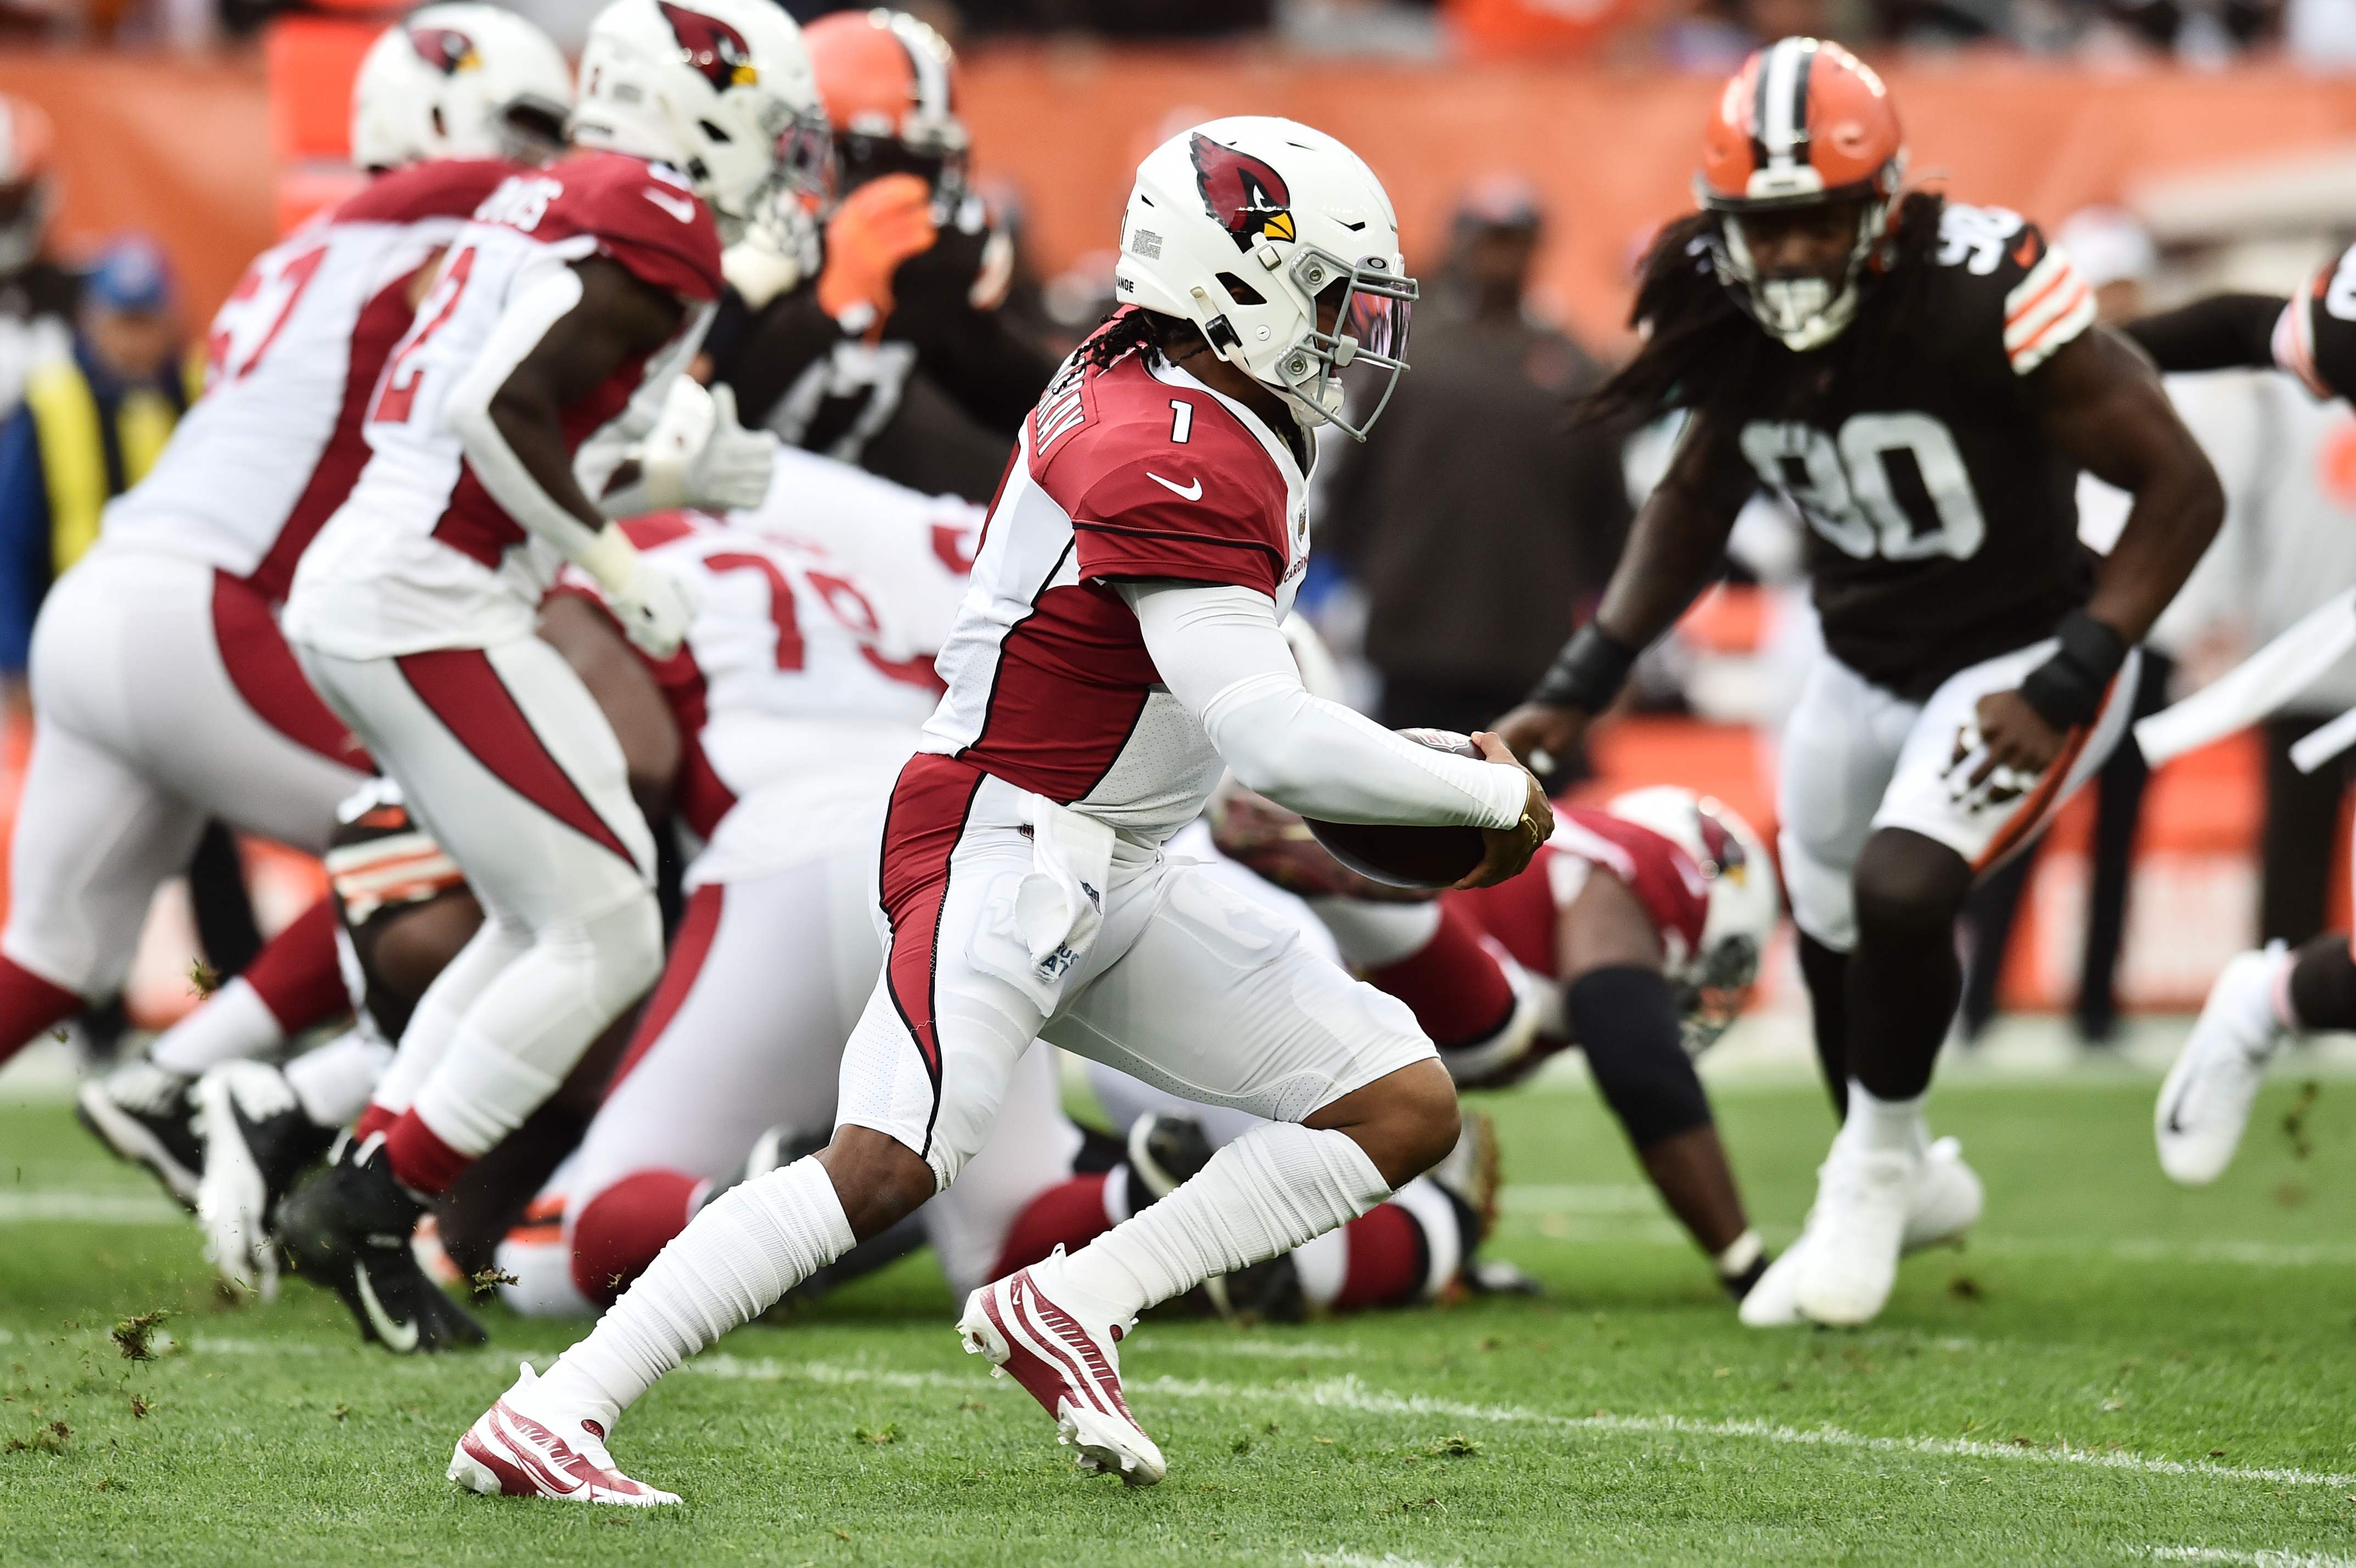 Arizona Cardinals quarterback Kyler Murray (1) runs with the ball during the first half against the Cleveland Browns at FirstEnergy Stadium.